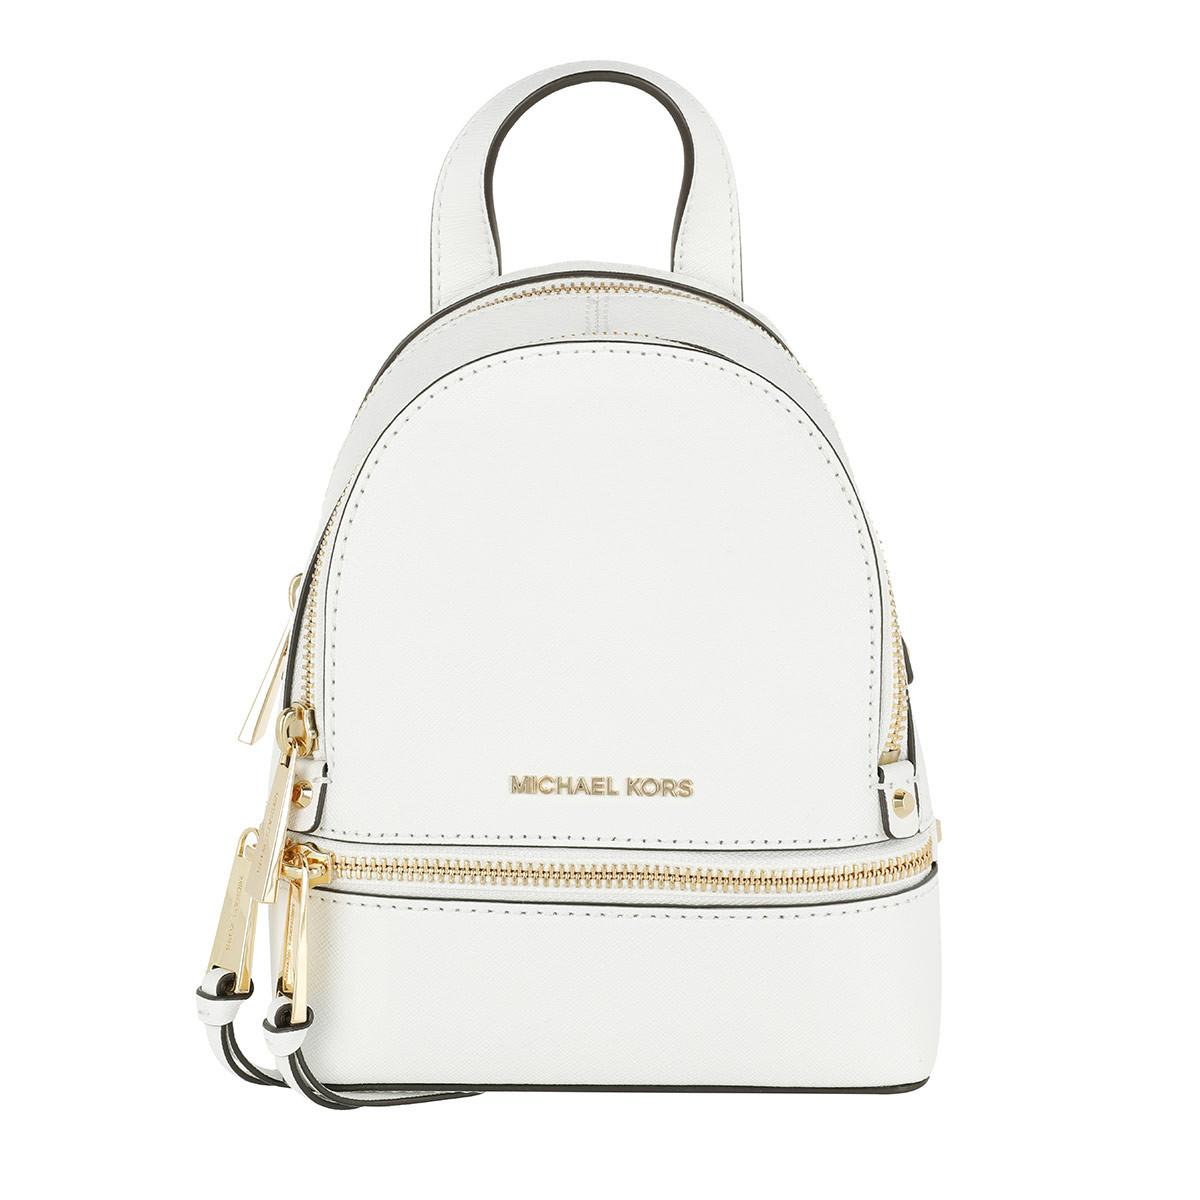 0f5797882f24 Gallery. Previously sold at: Fashionette · Women's Michael By Michael Kors  Rhea